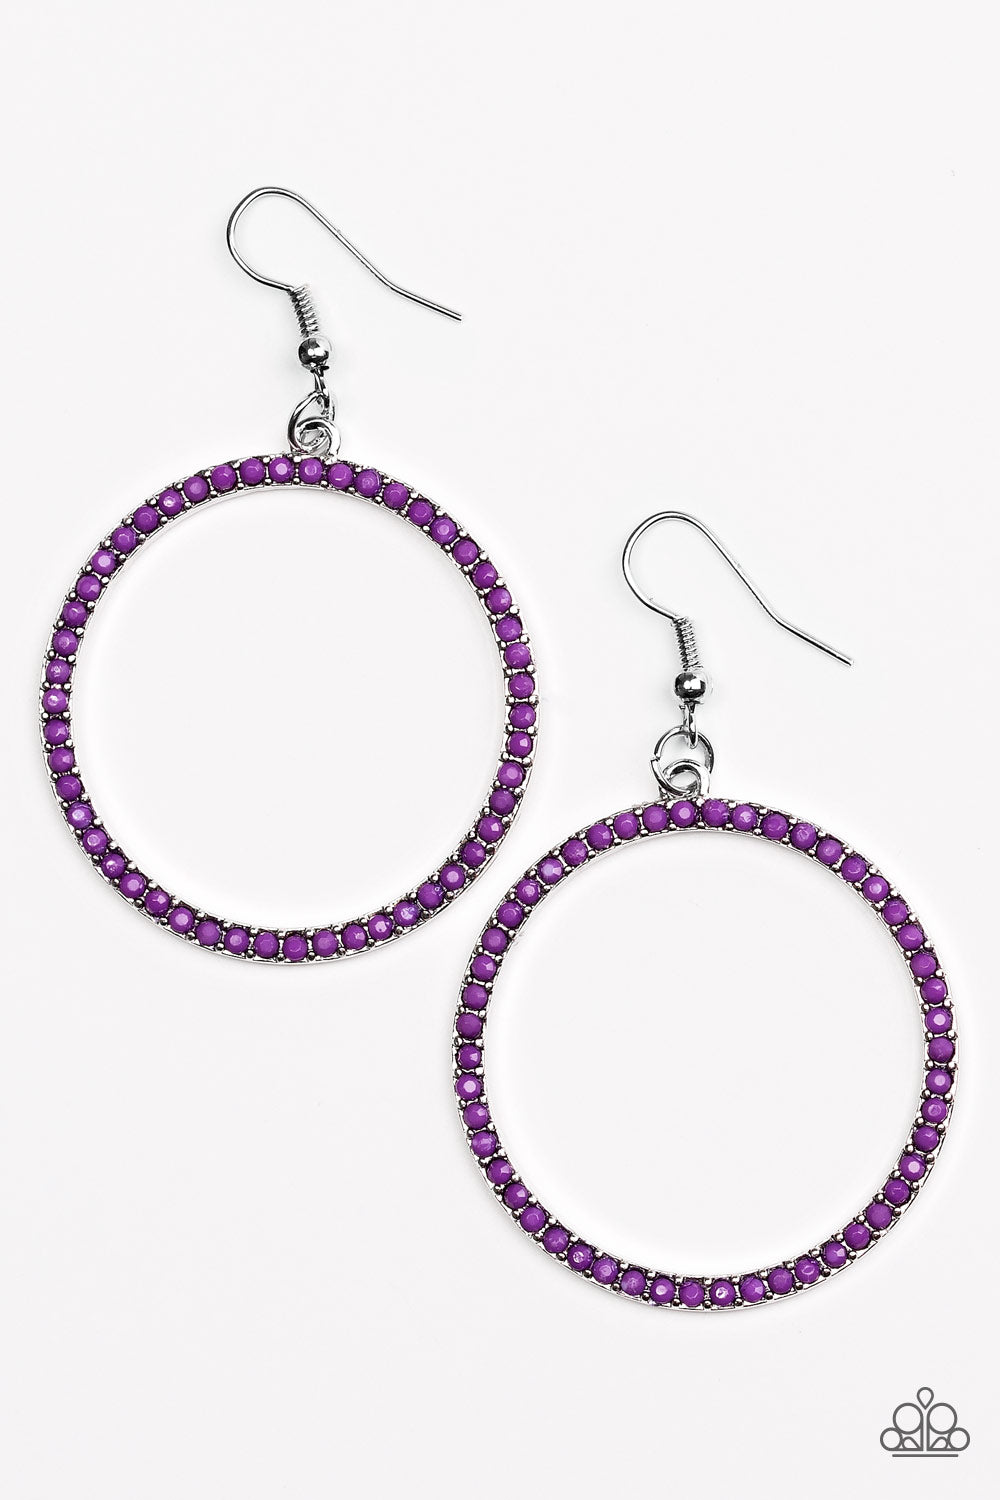 five-dollar-jewelry-spring-party-purple-paparazzi-accessories